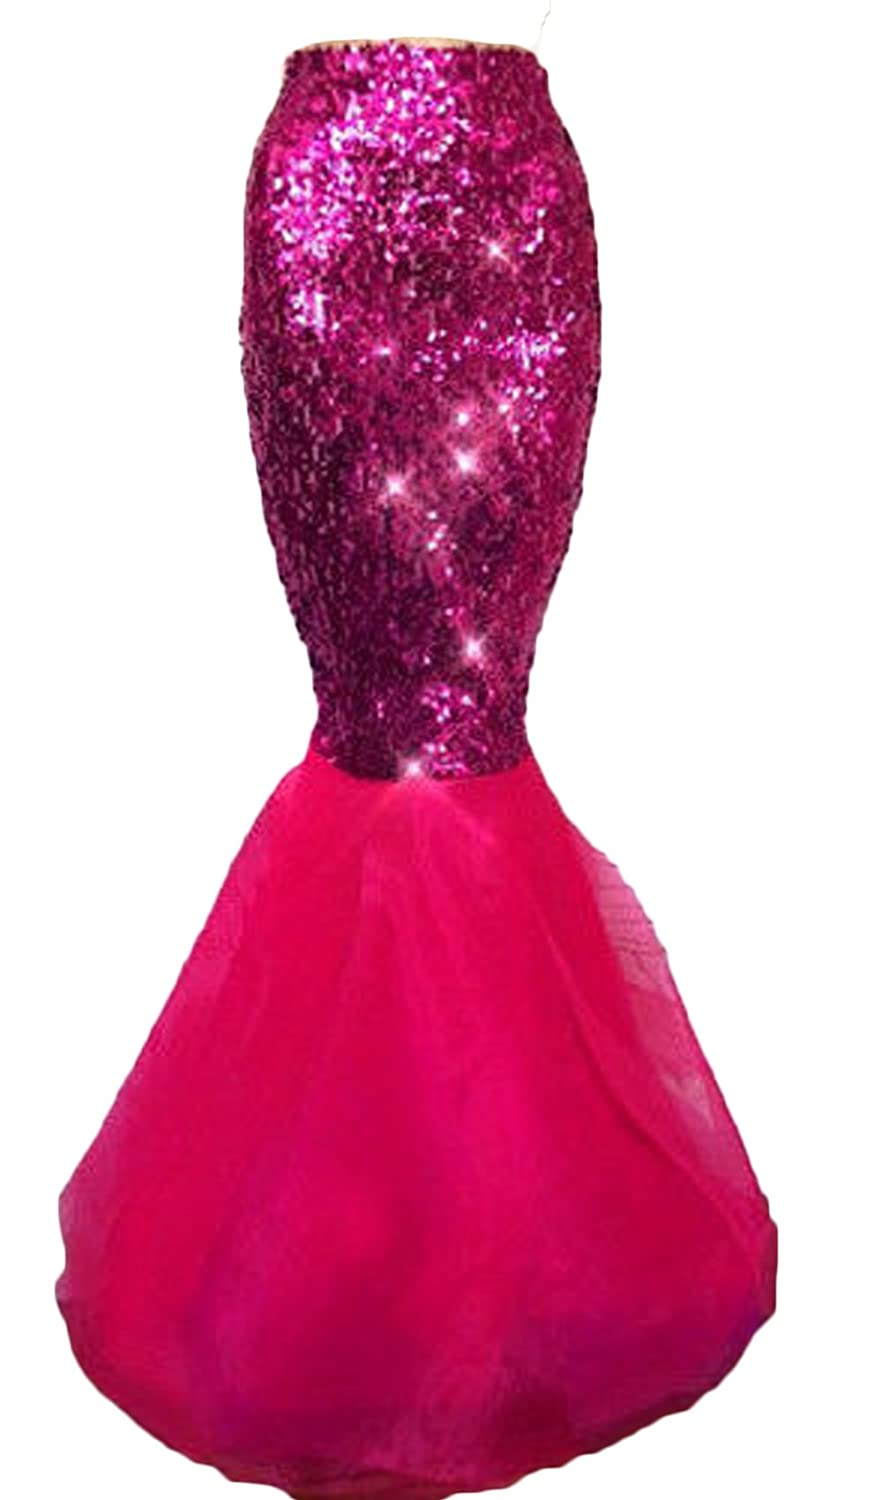 Women's Pink Sequins Asymmetric Mesh Panel Mermaid Costume Skirt - DeluxeAdultCostumes.com